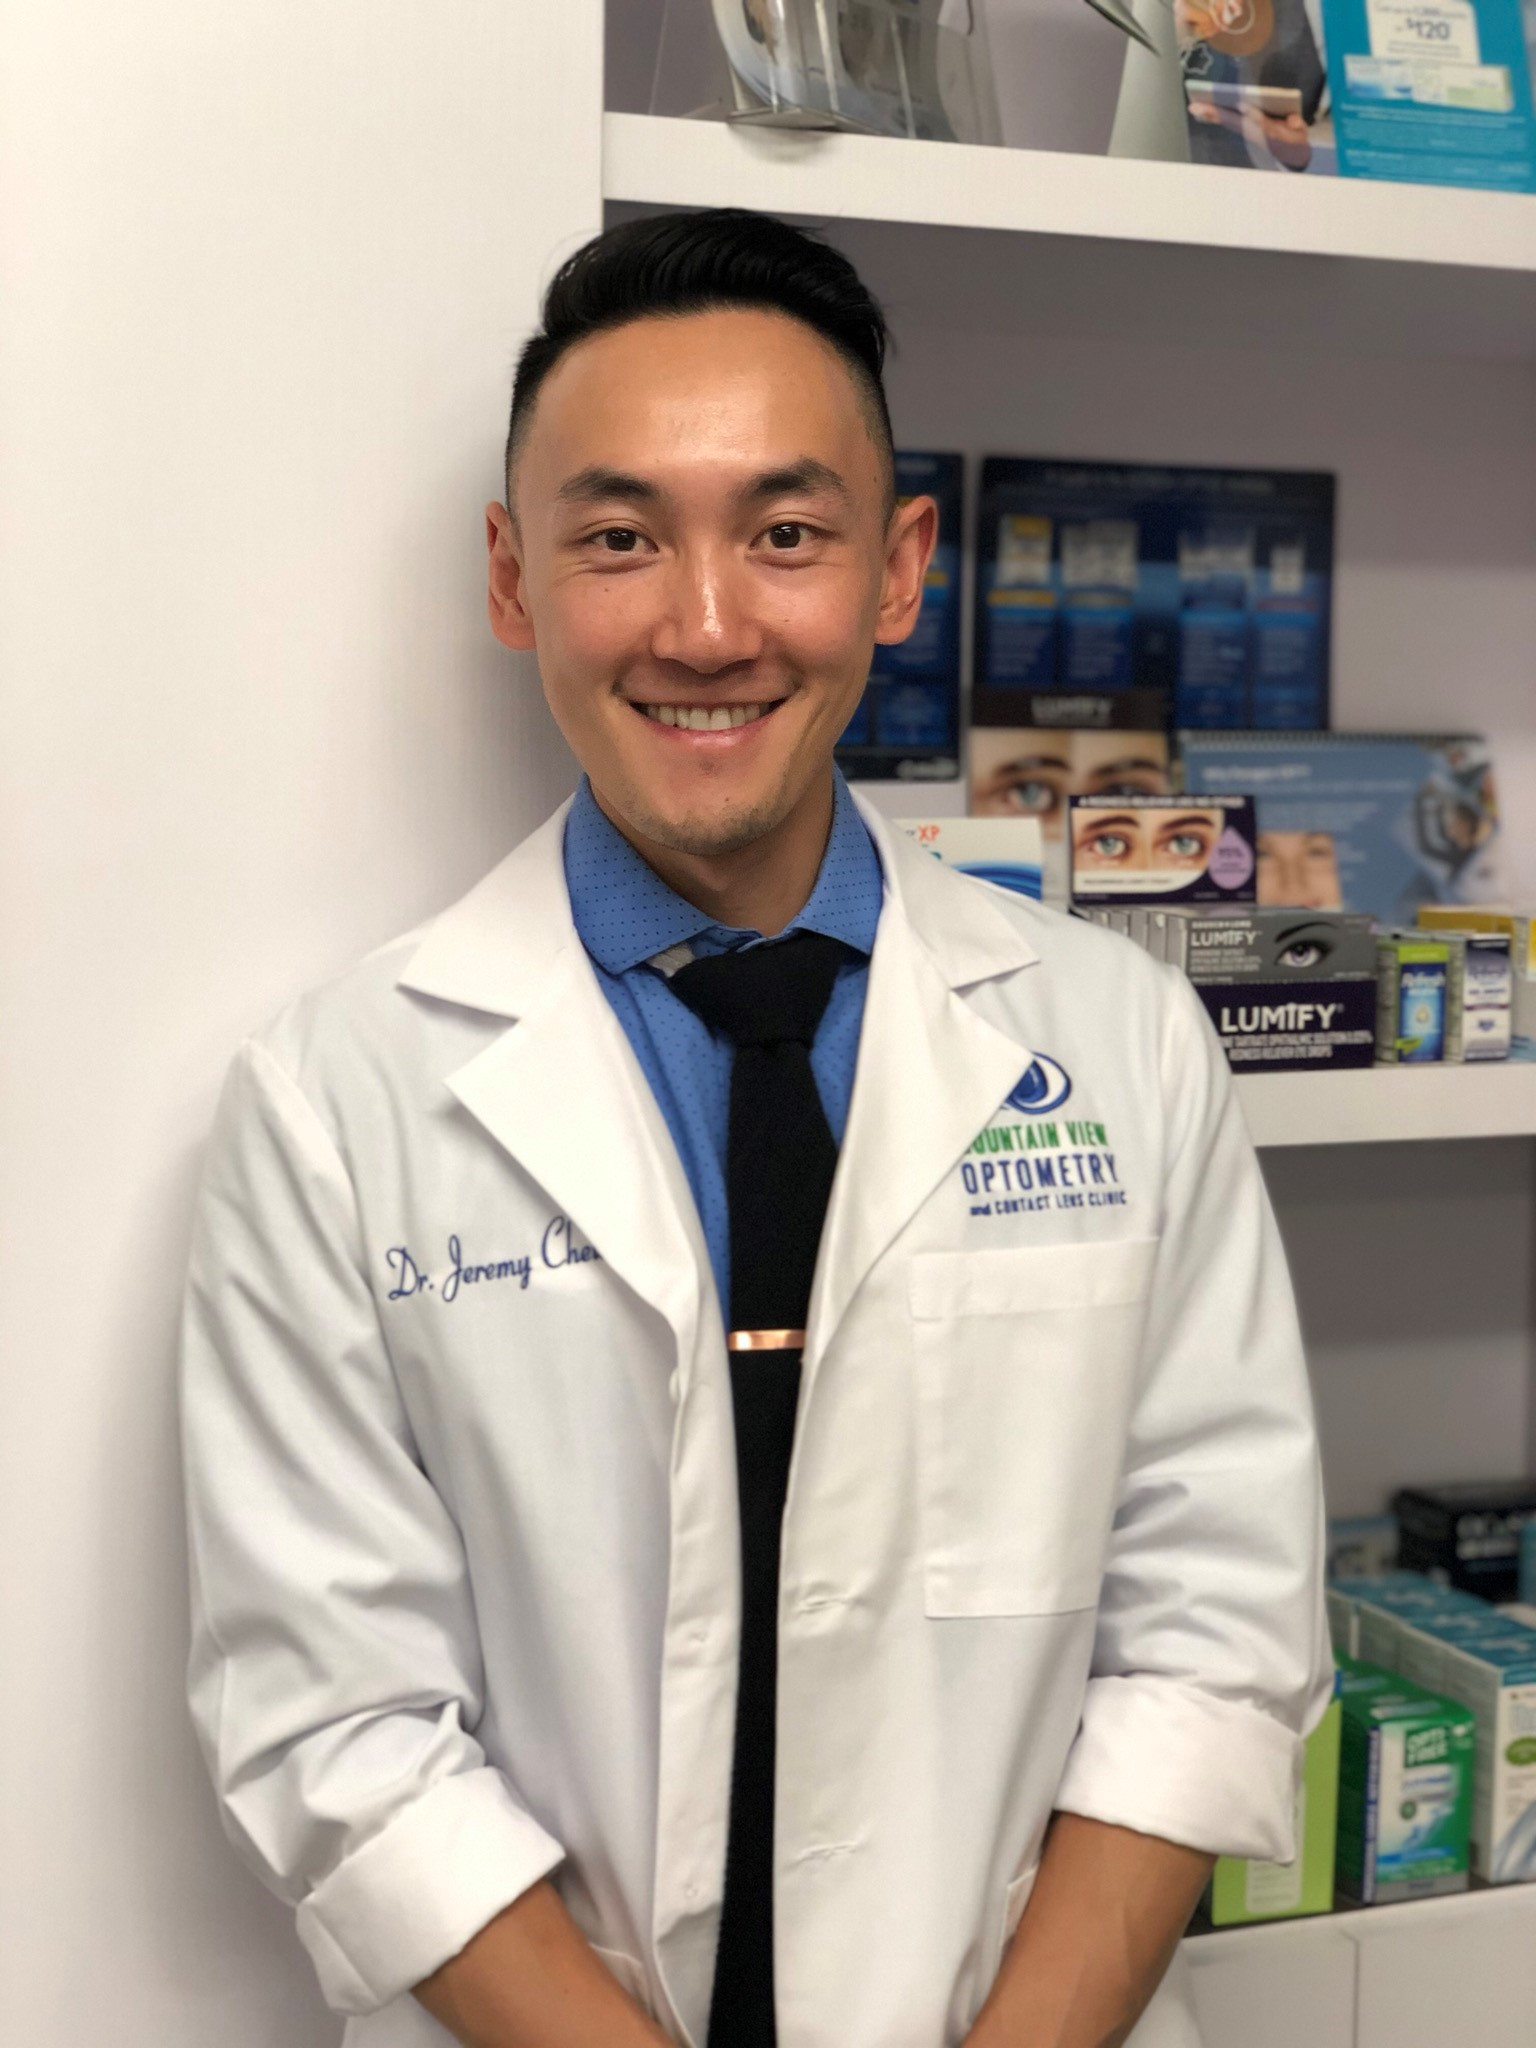 Dr. Jeremy Cheung